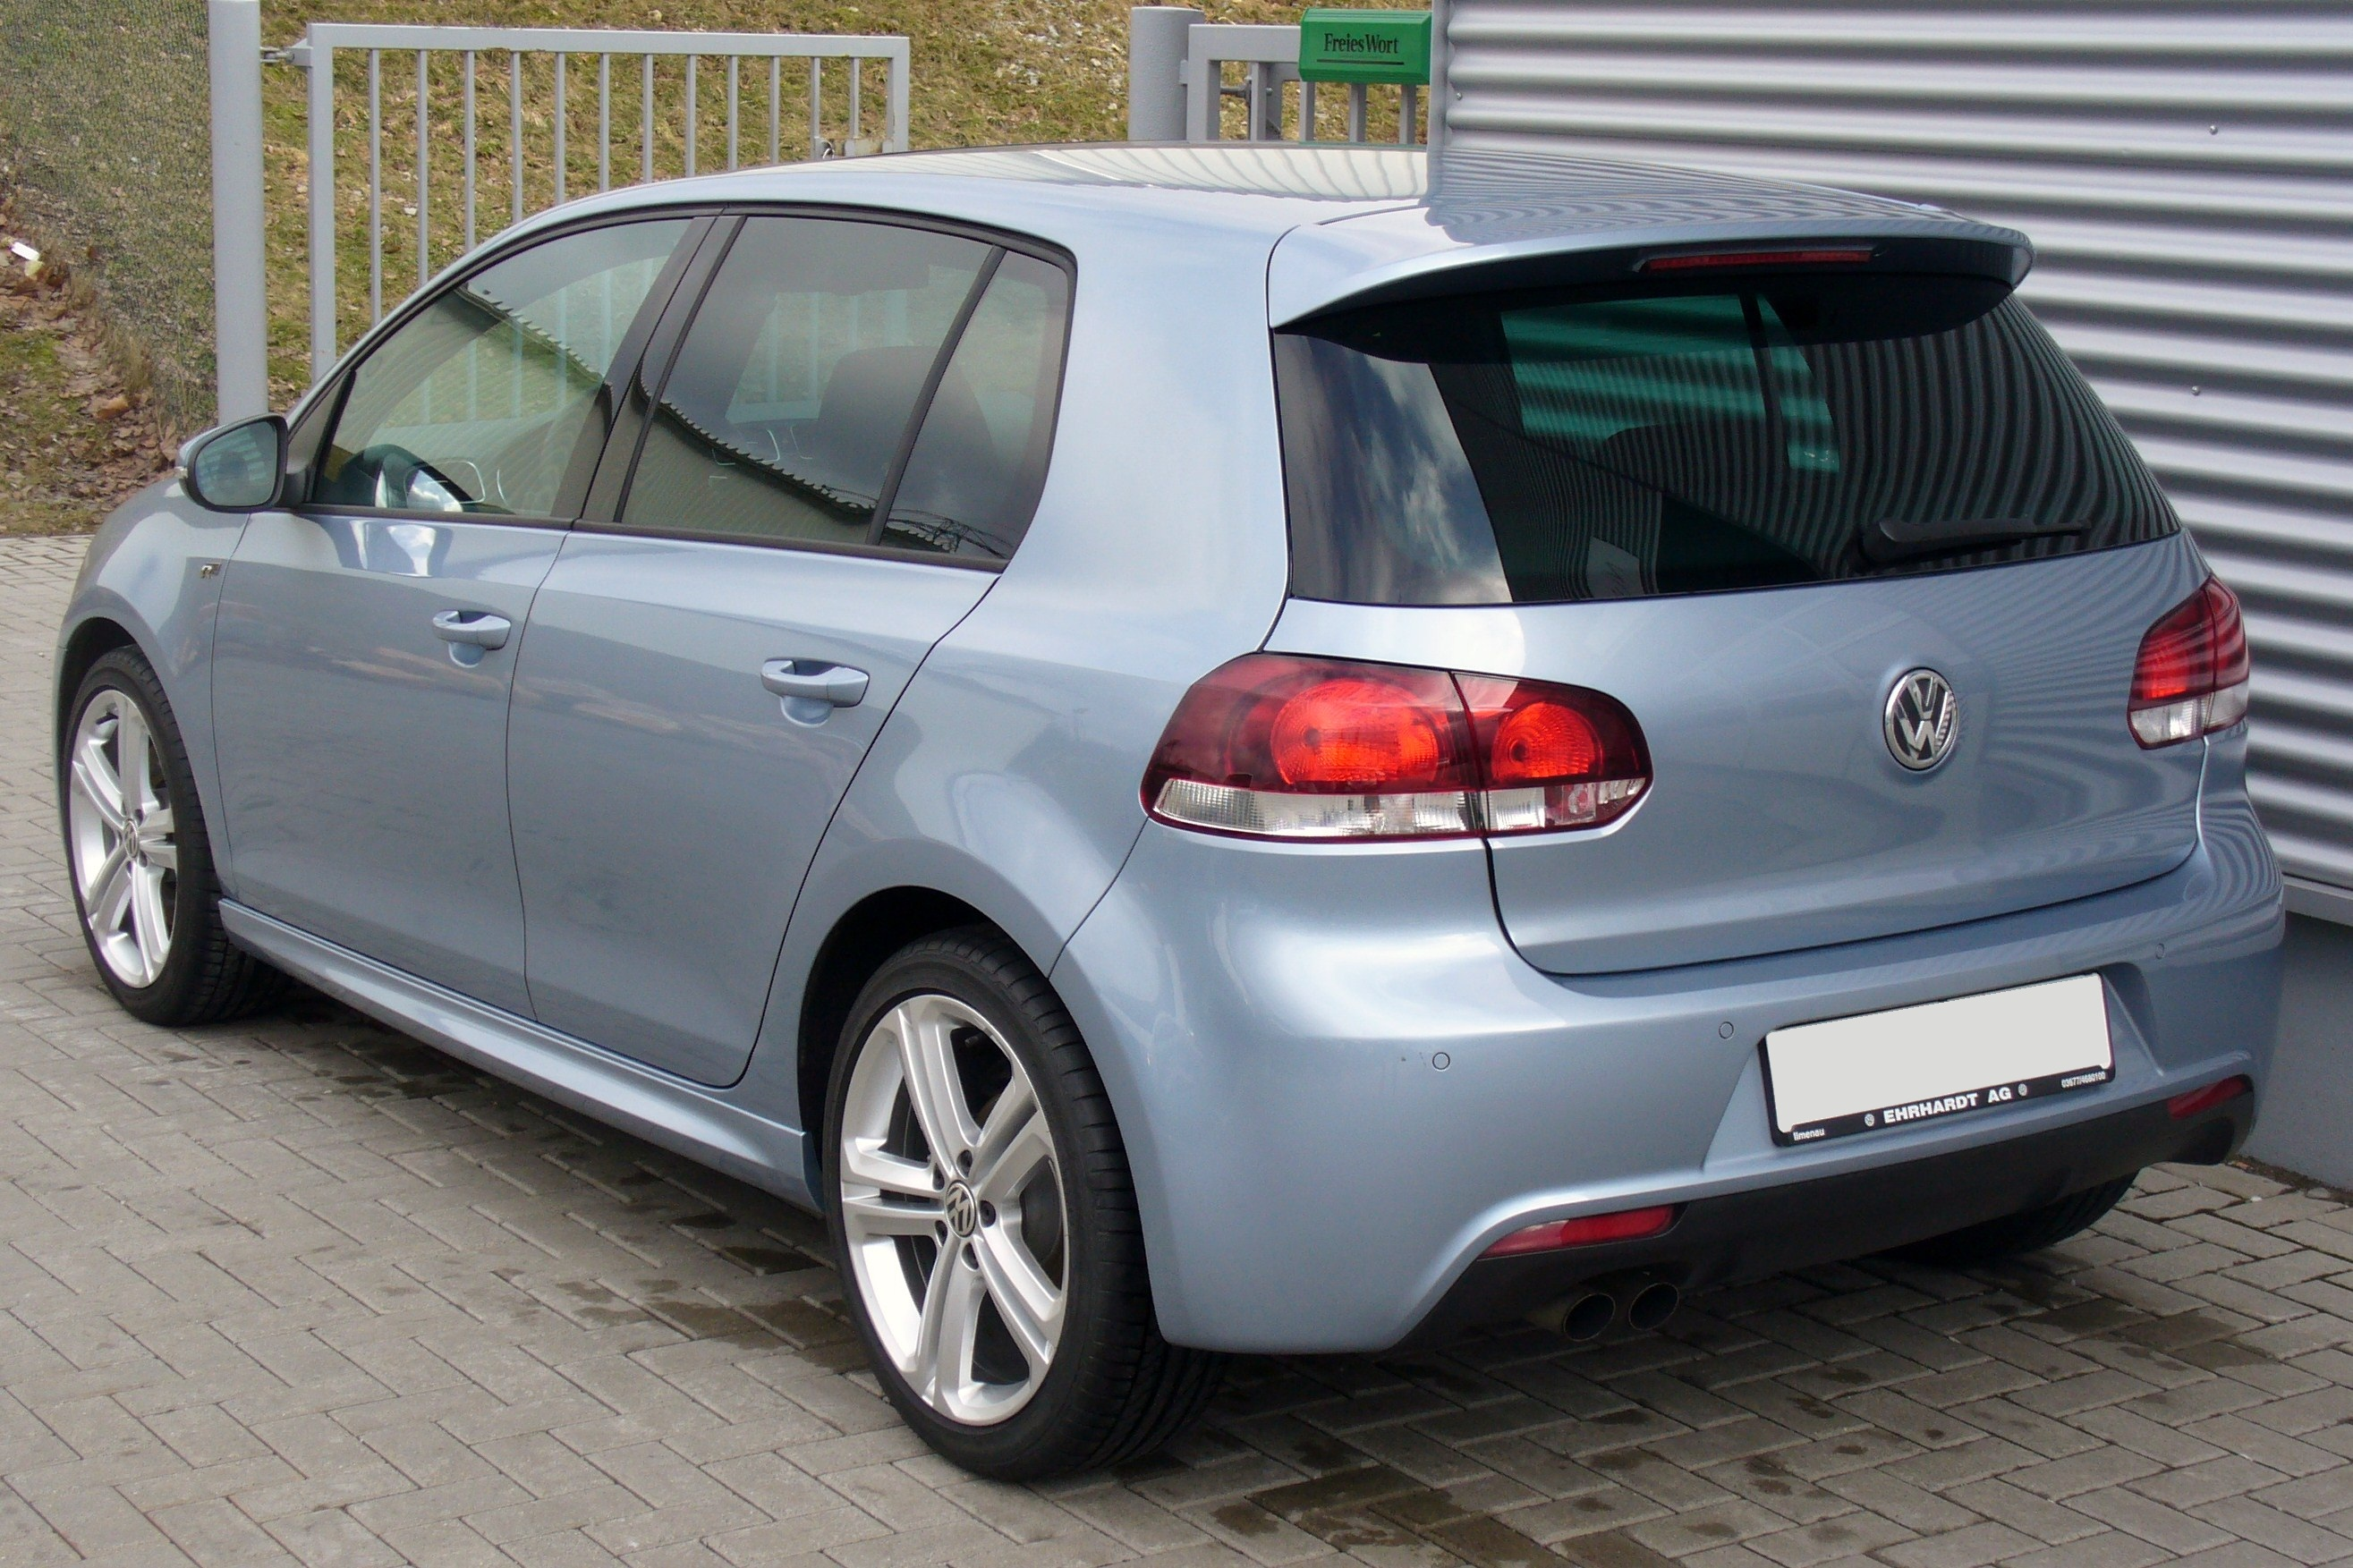 vw golf 6 r line images galleries with a bite. Black Bedroom Furniture Sets. Home Design Ideas